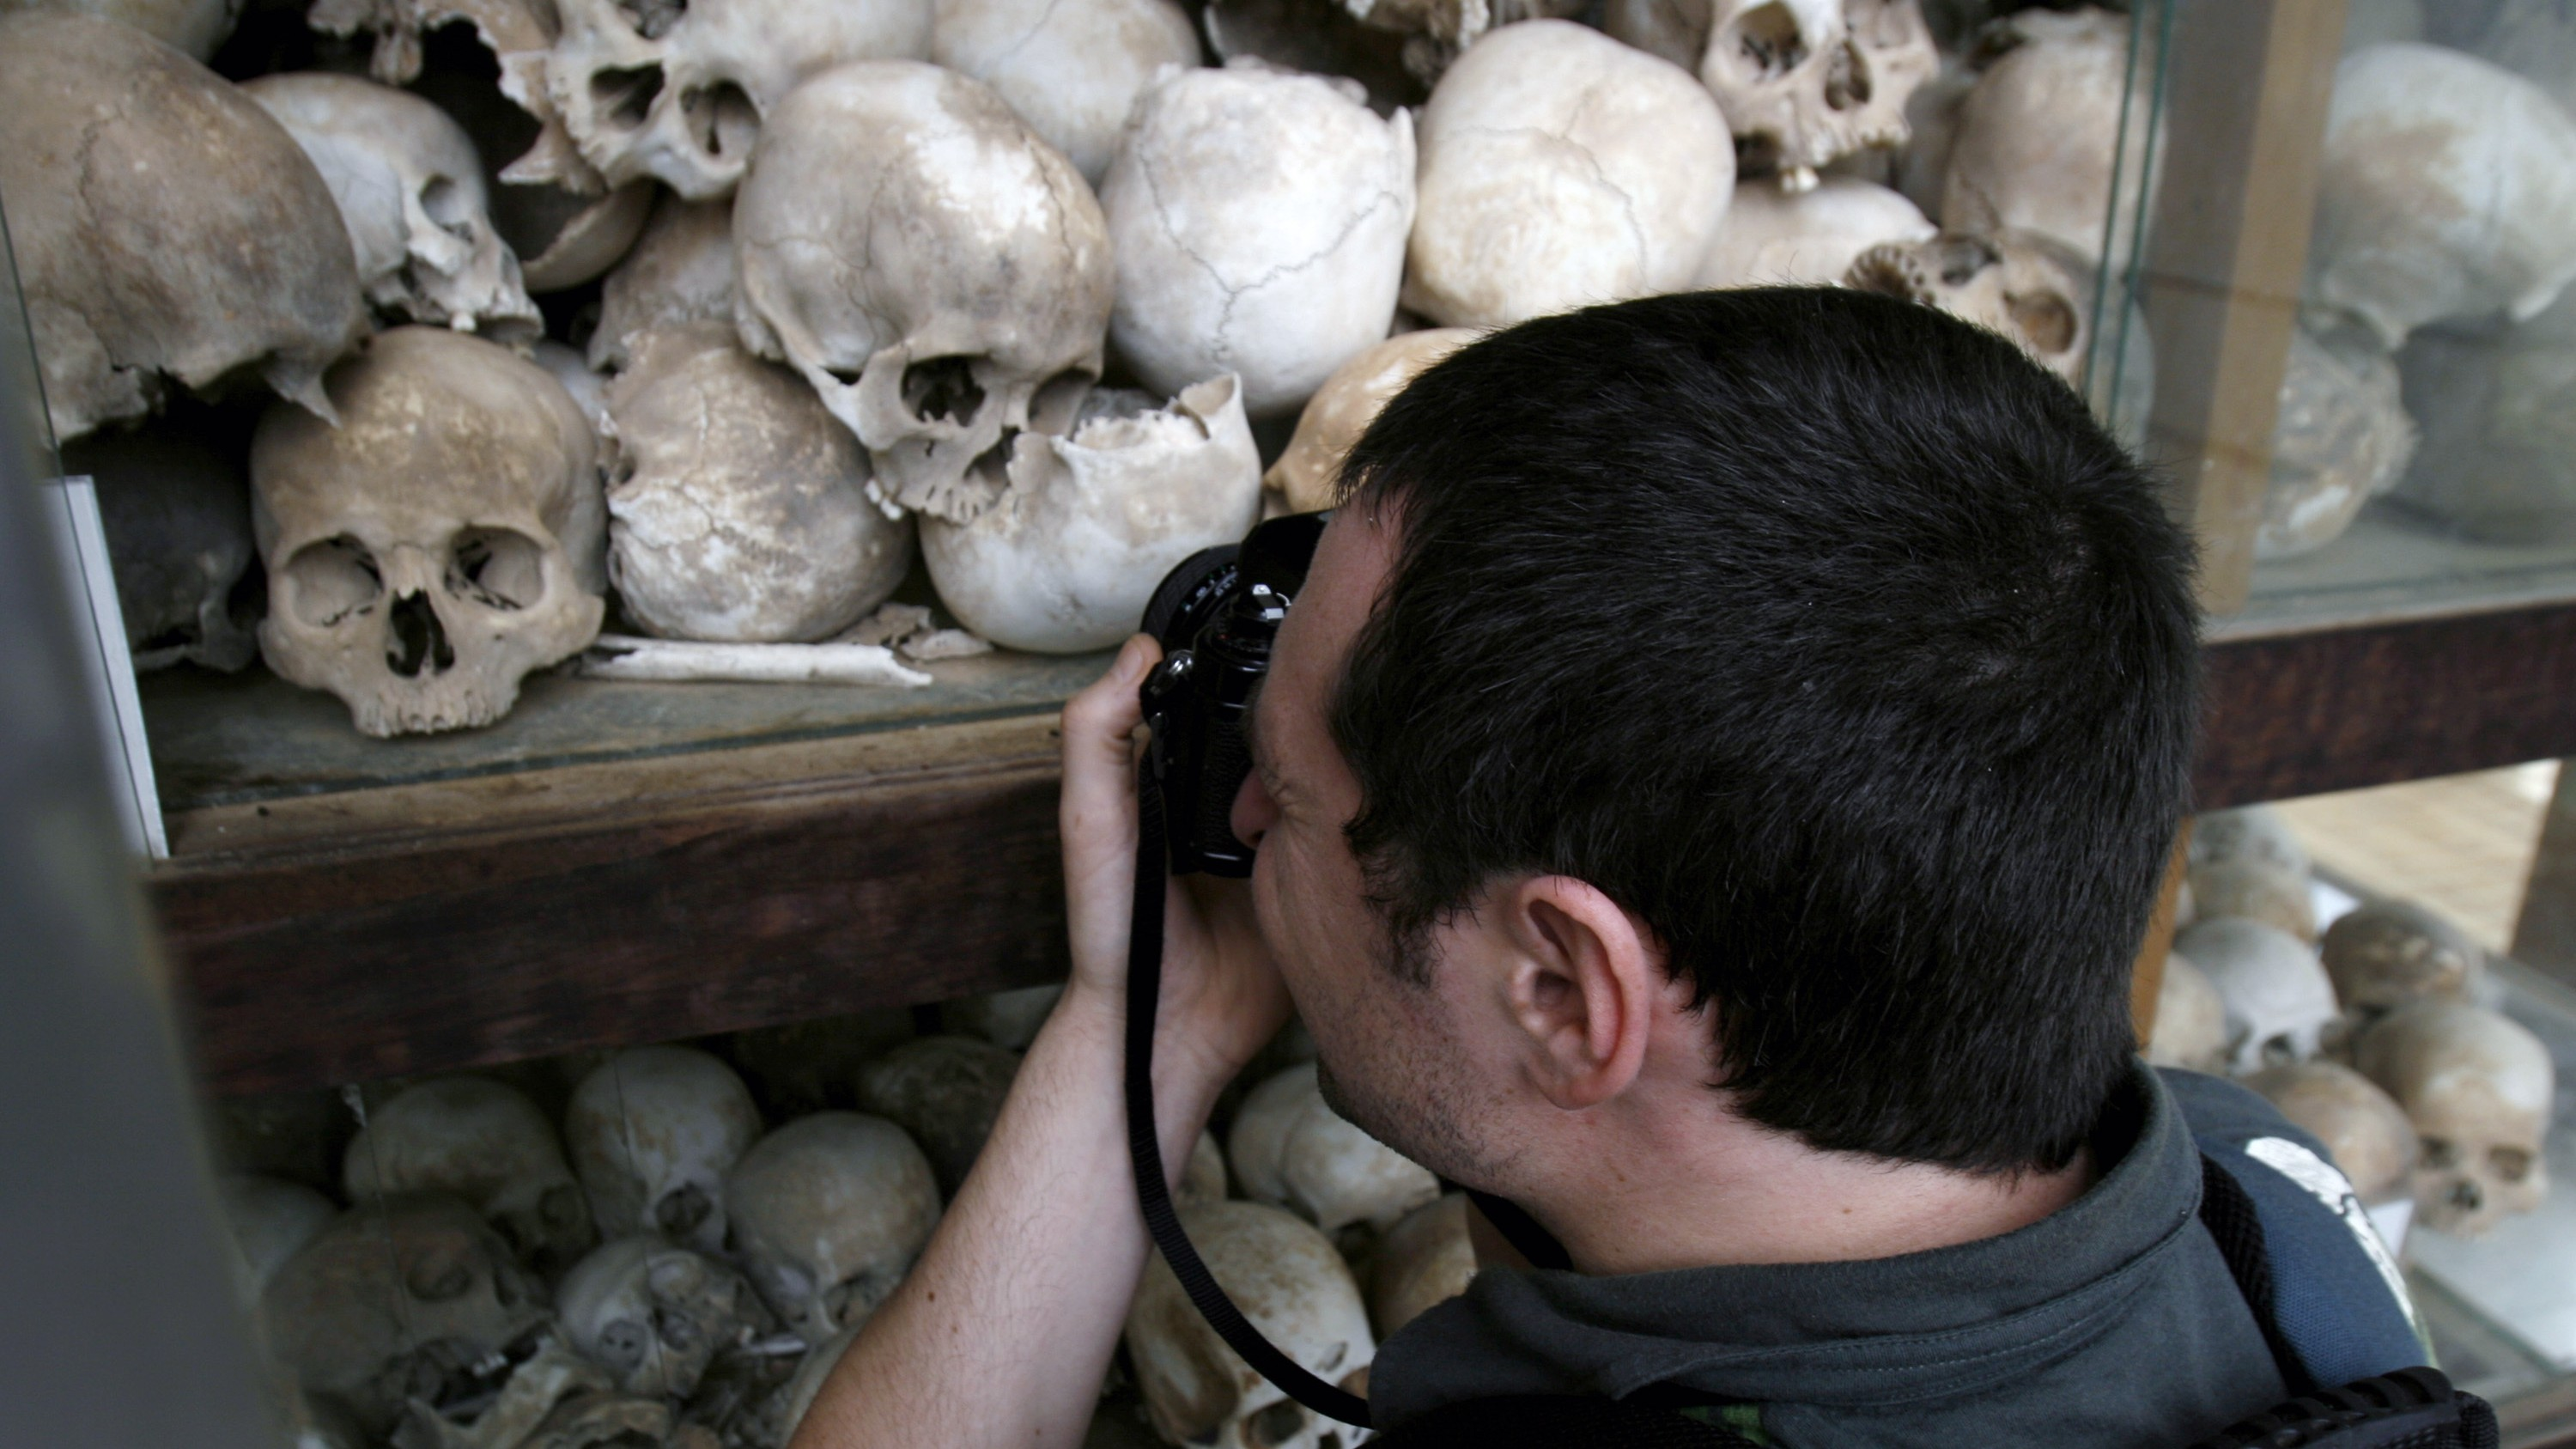 """A Westerner tourist man takes picture of human skulls at Choeung Ek killing field in Phnom Penh, Cambodia, Thursday, Feb. 26, 2008. The former head of a notorious Khmer Rouge torture center was moved to tears Tuesday when he was taken by Cambodia's genocide tribunal to the scene of his alleged crimes, a mass grave site that was one of the country's notorious """"killing fields."""" (AP Photo/Heng Sinith)"""